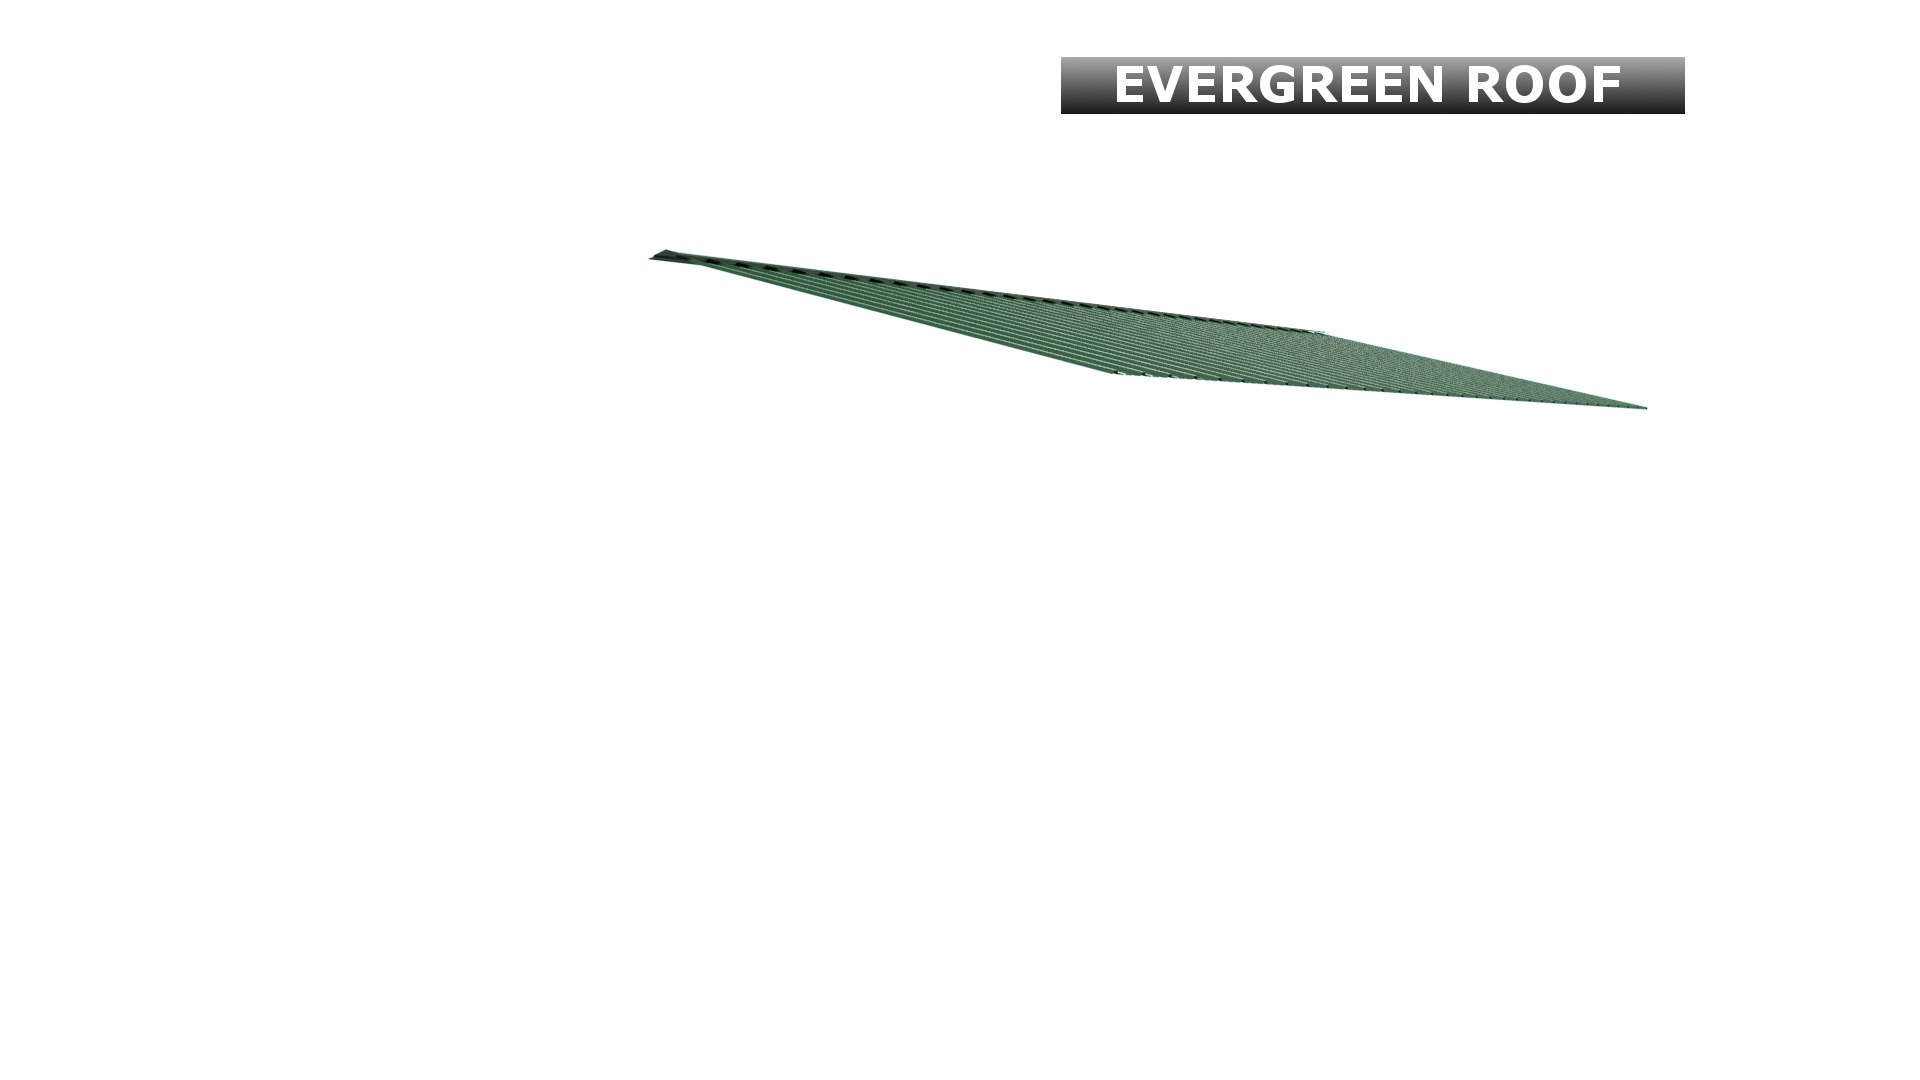 EVERGREEN ROOF